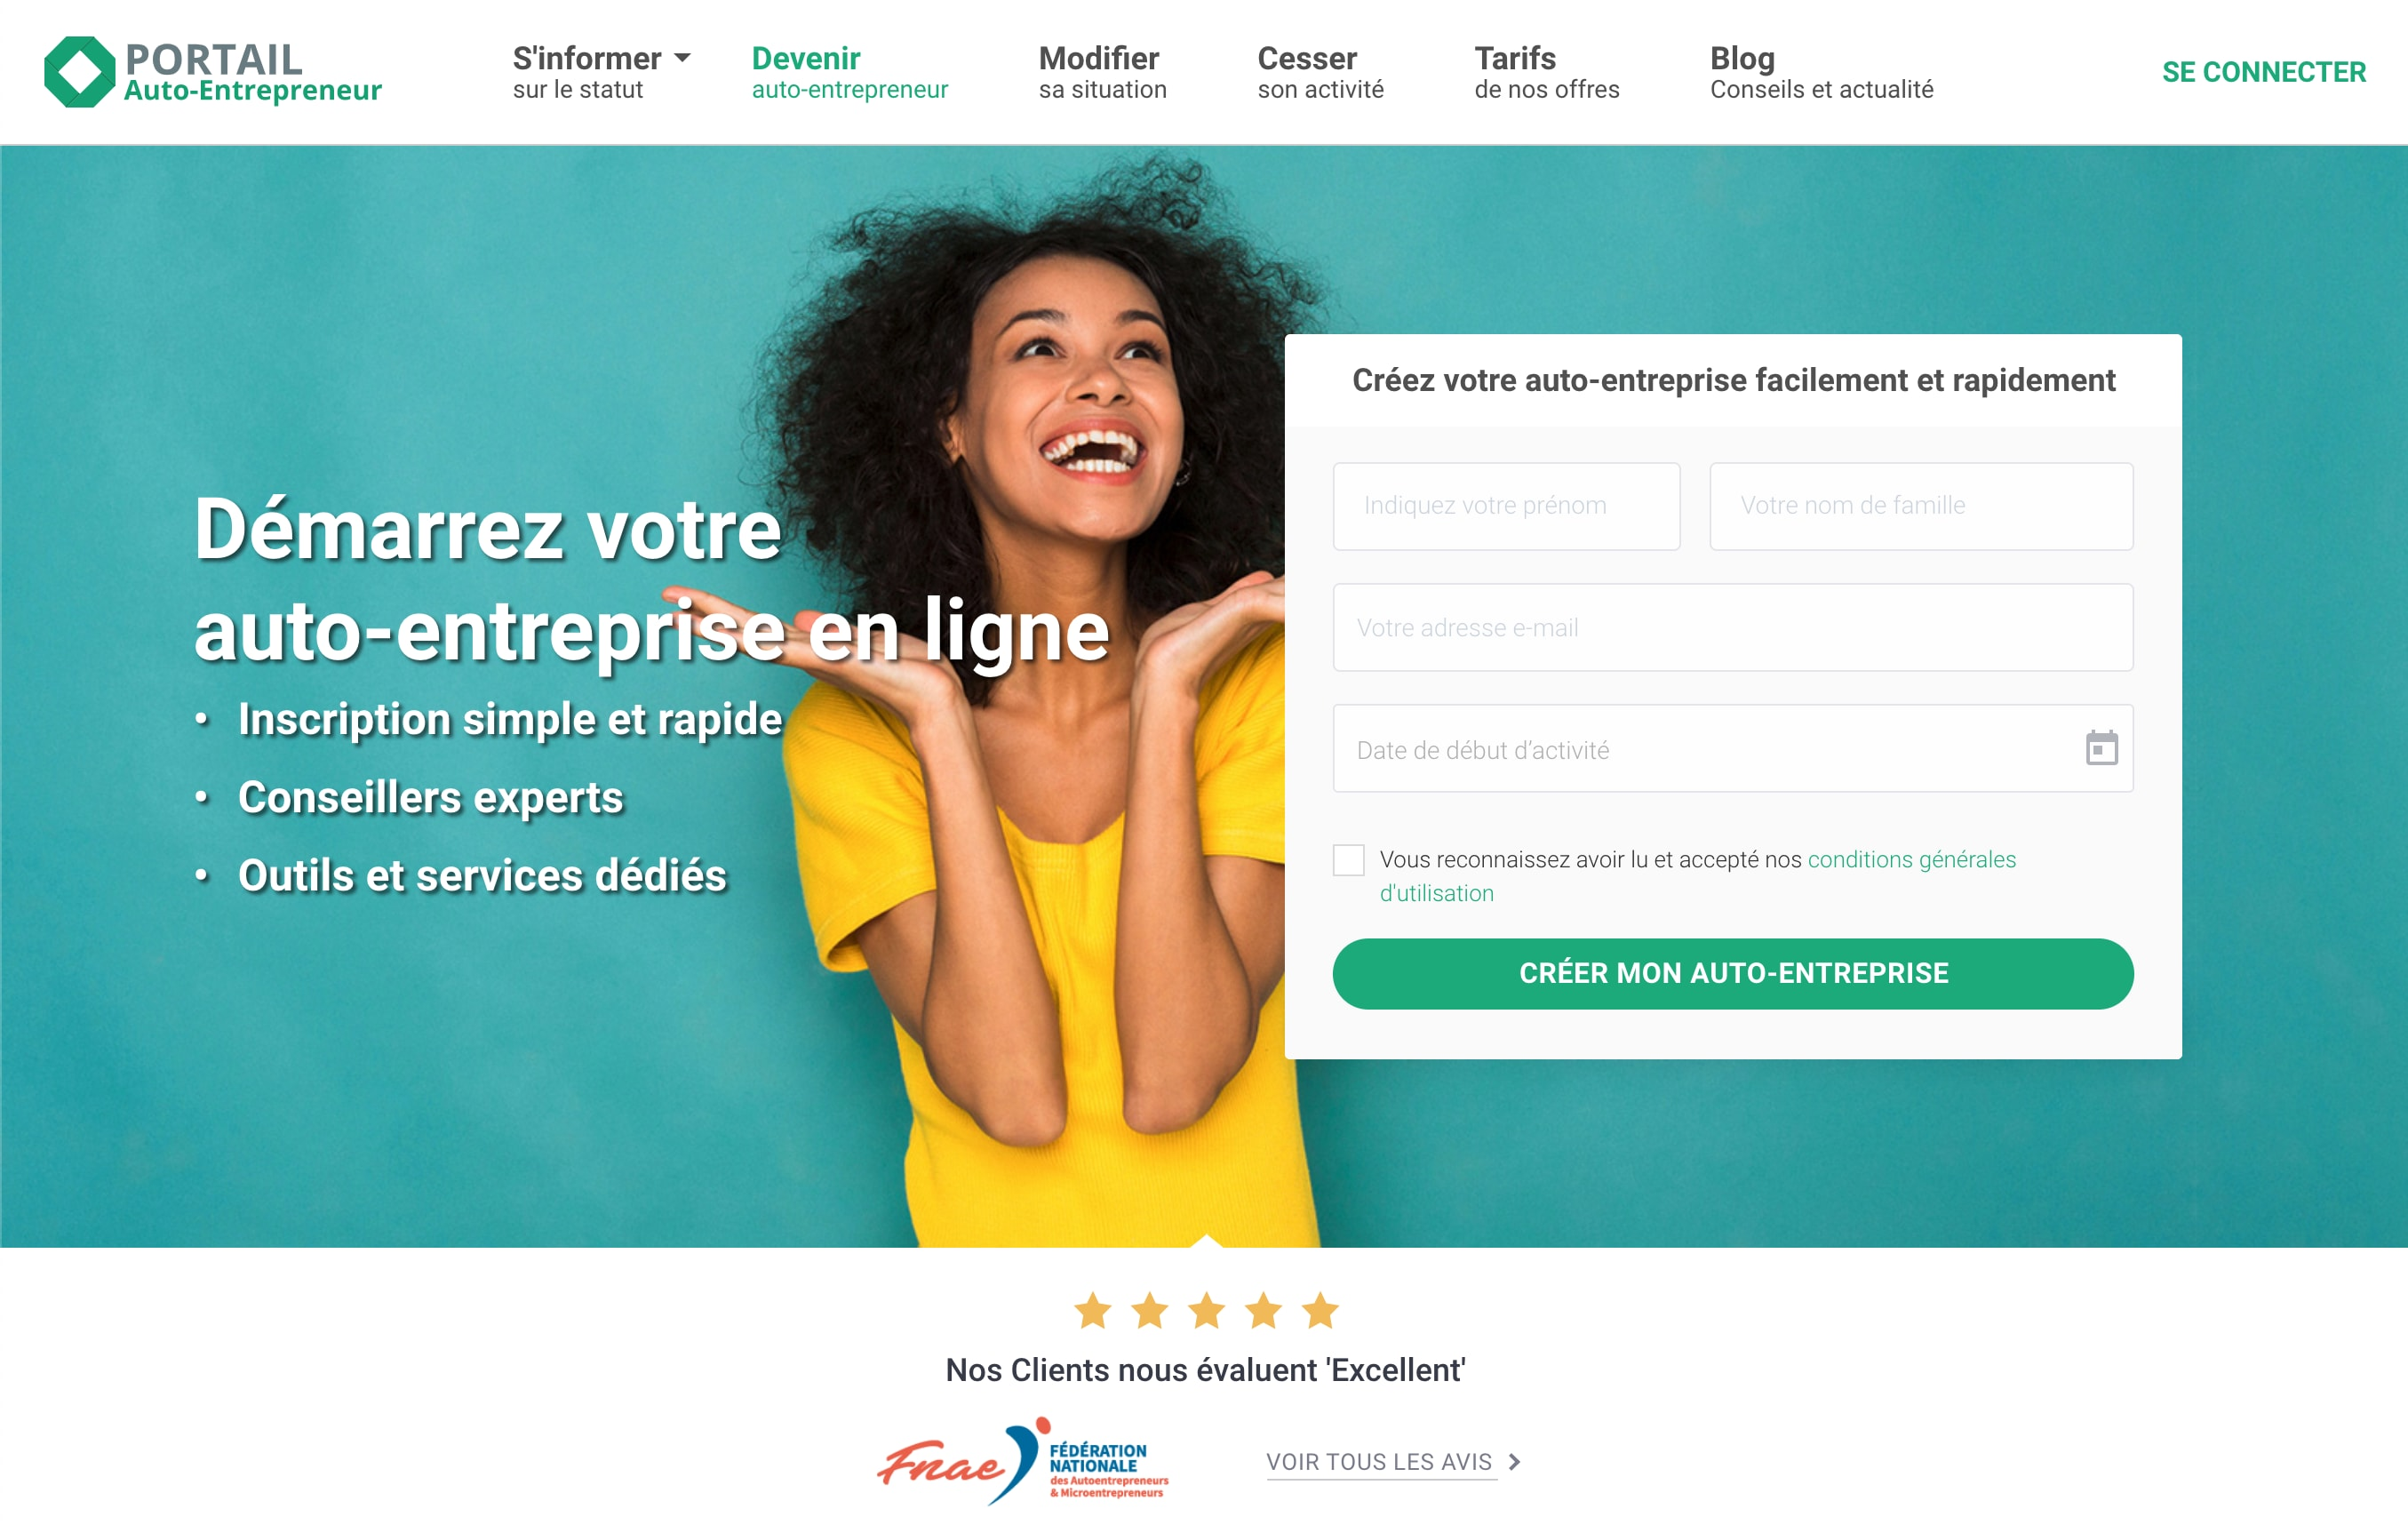 Le Portail Auto-Entrepreneur is a support service facilitating all the steps needed to create a self-business. Auto-Entrepreneur portal counts more than 50,000 self-entrepreneurs united since 2013 around a common objective: to give themselves the capacity and the means to start a professional activity with ease. The Auto-Entrepreneur Portal is also a support service, entirely independent of the public administration, made up of many dedicated advisers who support you every day in the development and success of your self-business creation projects. We are aware that starting out as an auto-entrepreneur (micro-enterprise regime since 2016) is the result of a difficult exercise, which is why we give each person precise information personalized according to your sector of activity.